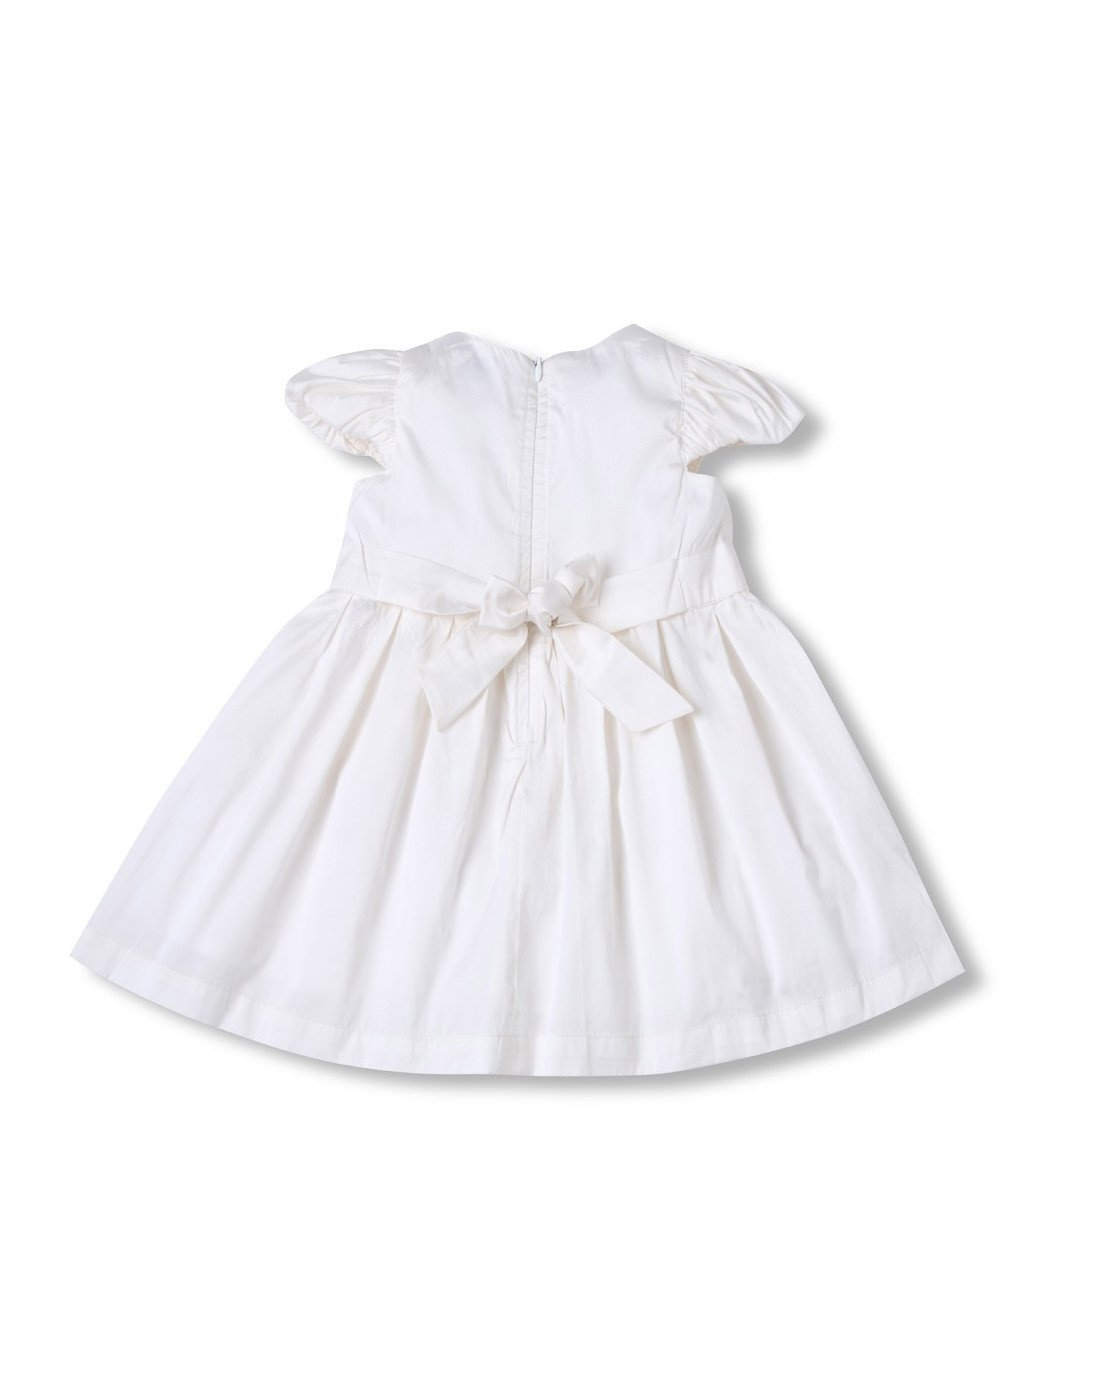 White Taffeta Dress